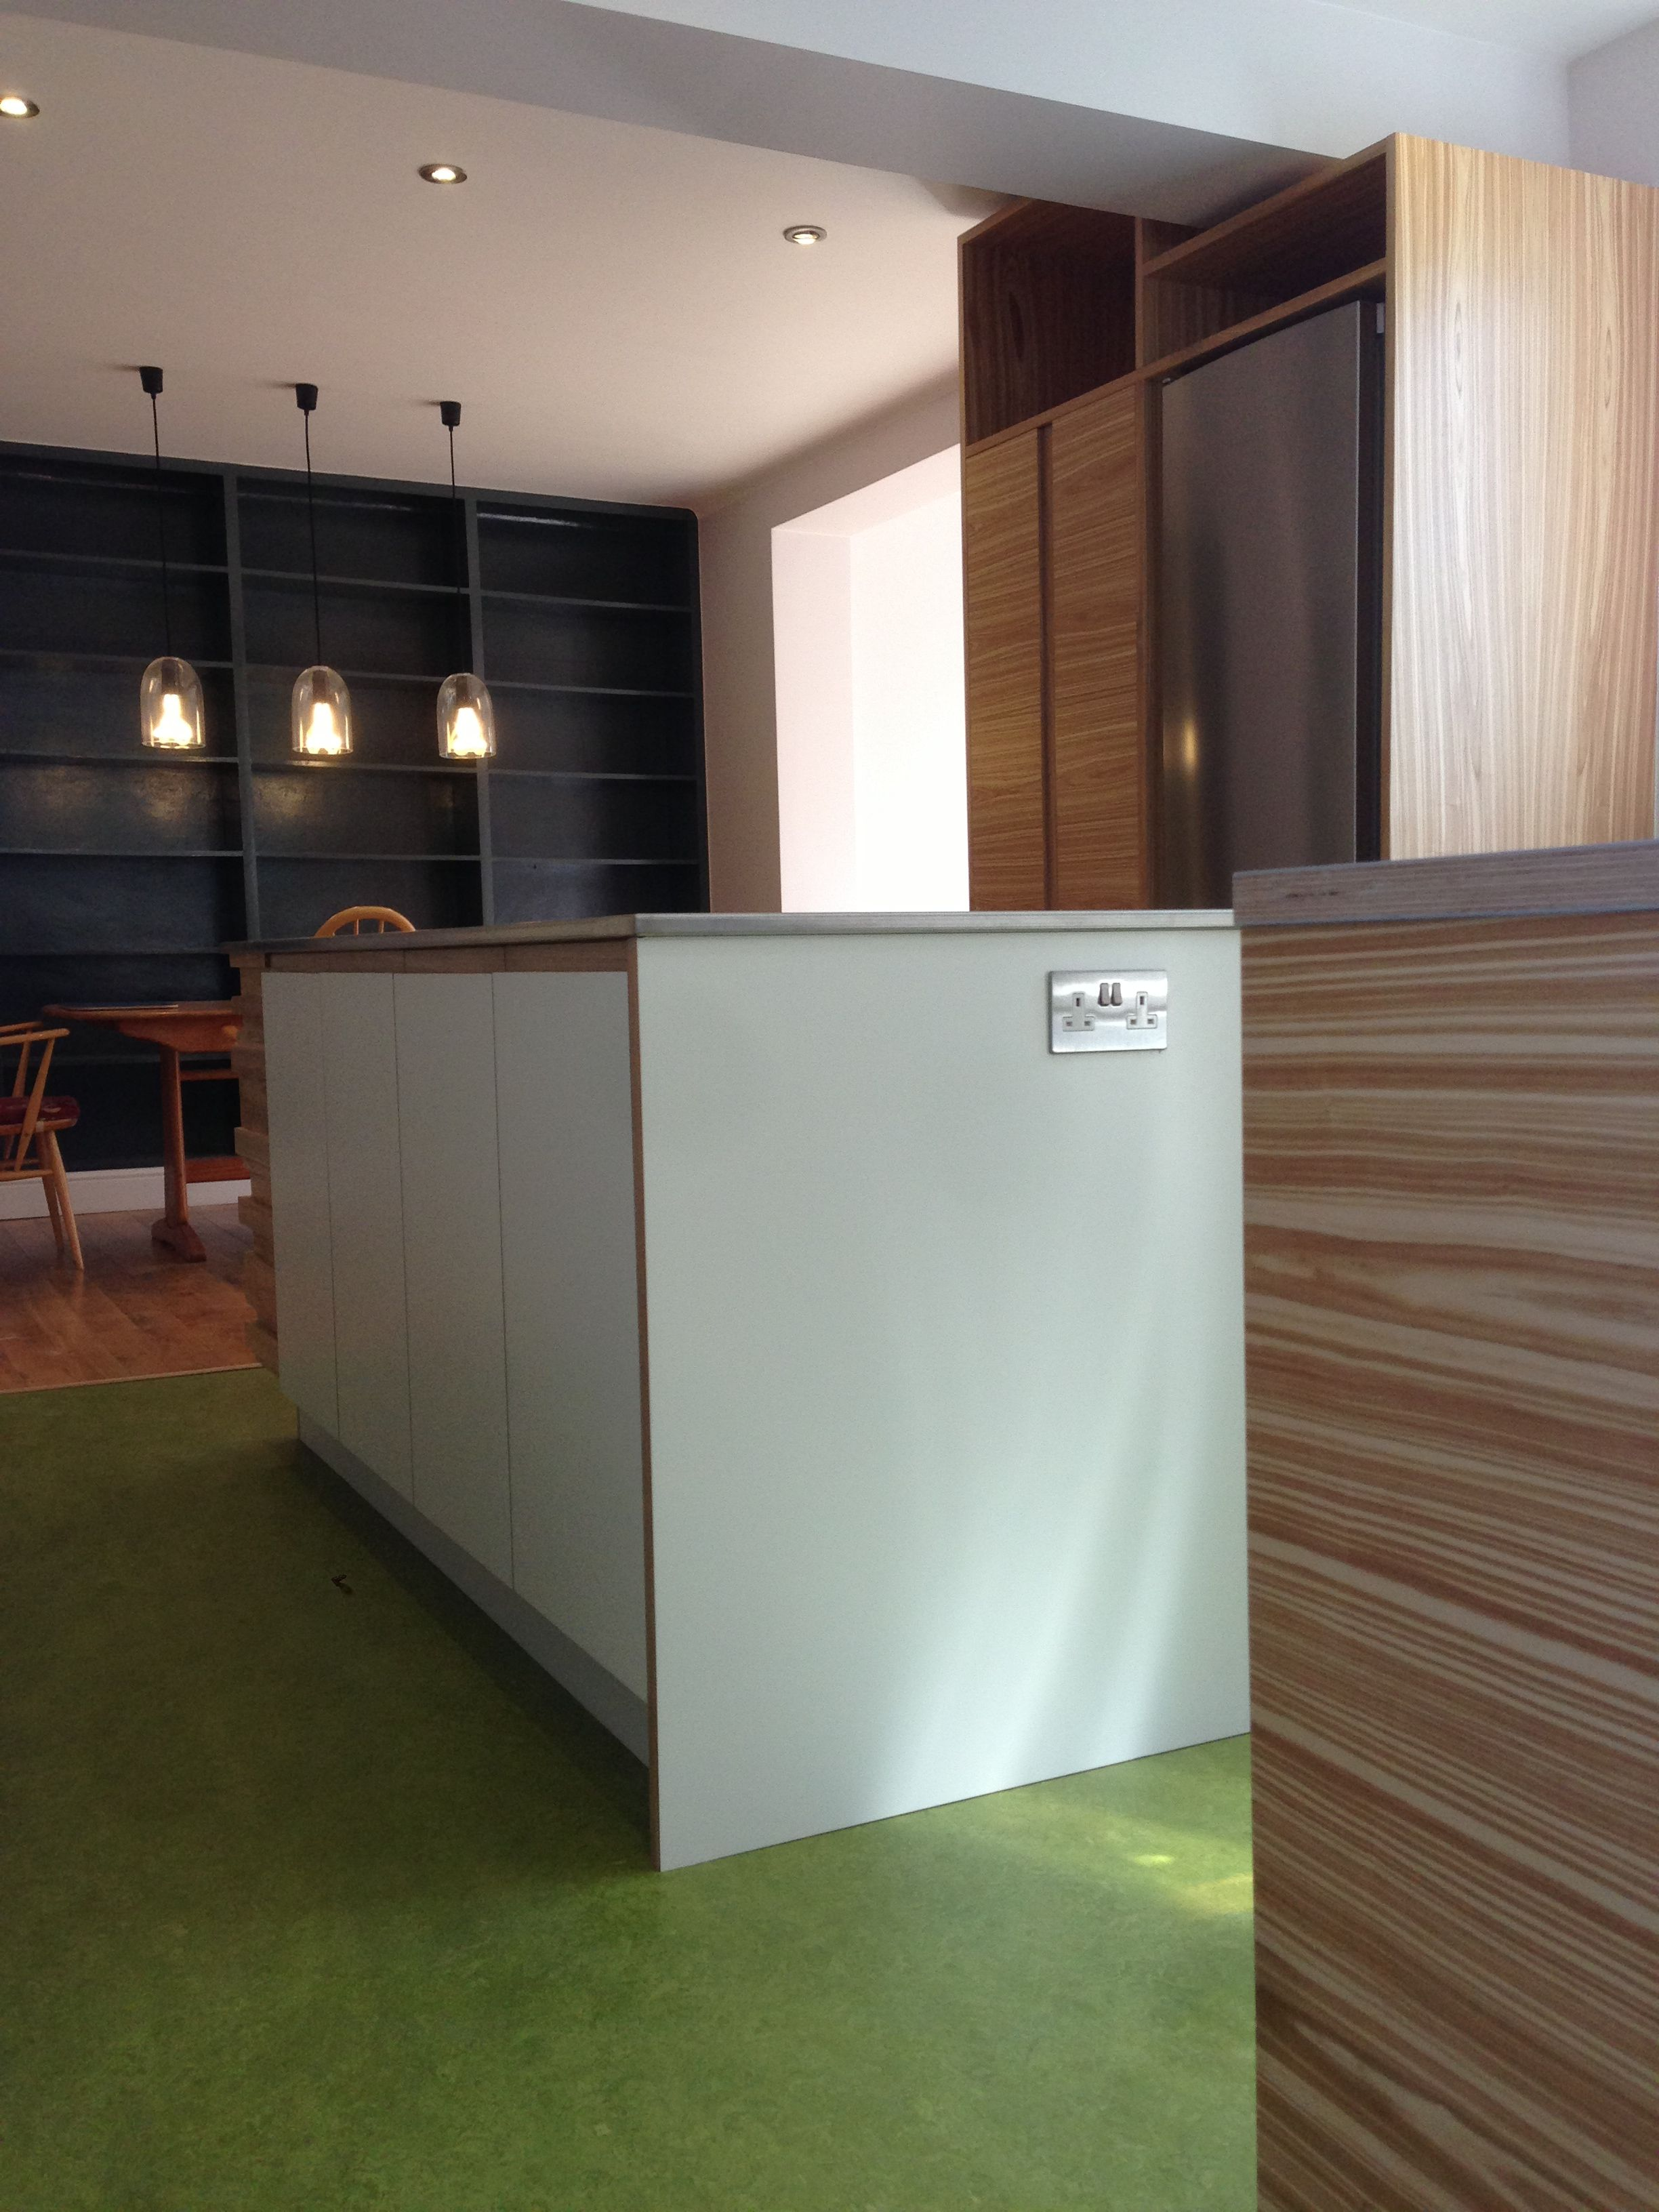 sq1 kitchen olive ash stainless steel formica oak veneered